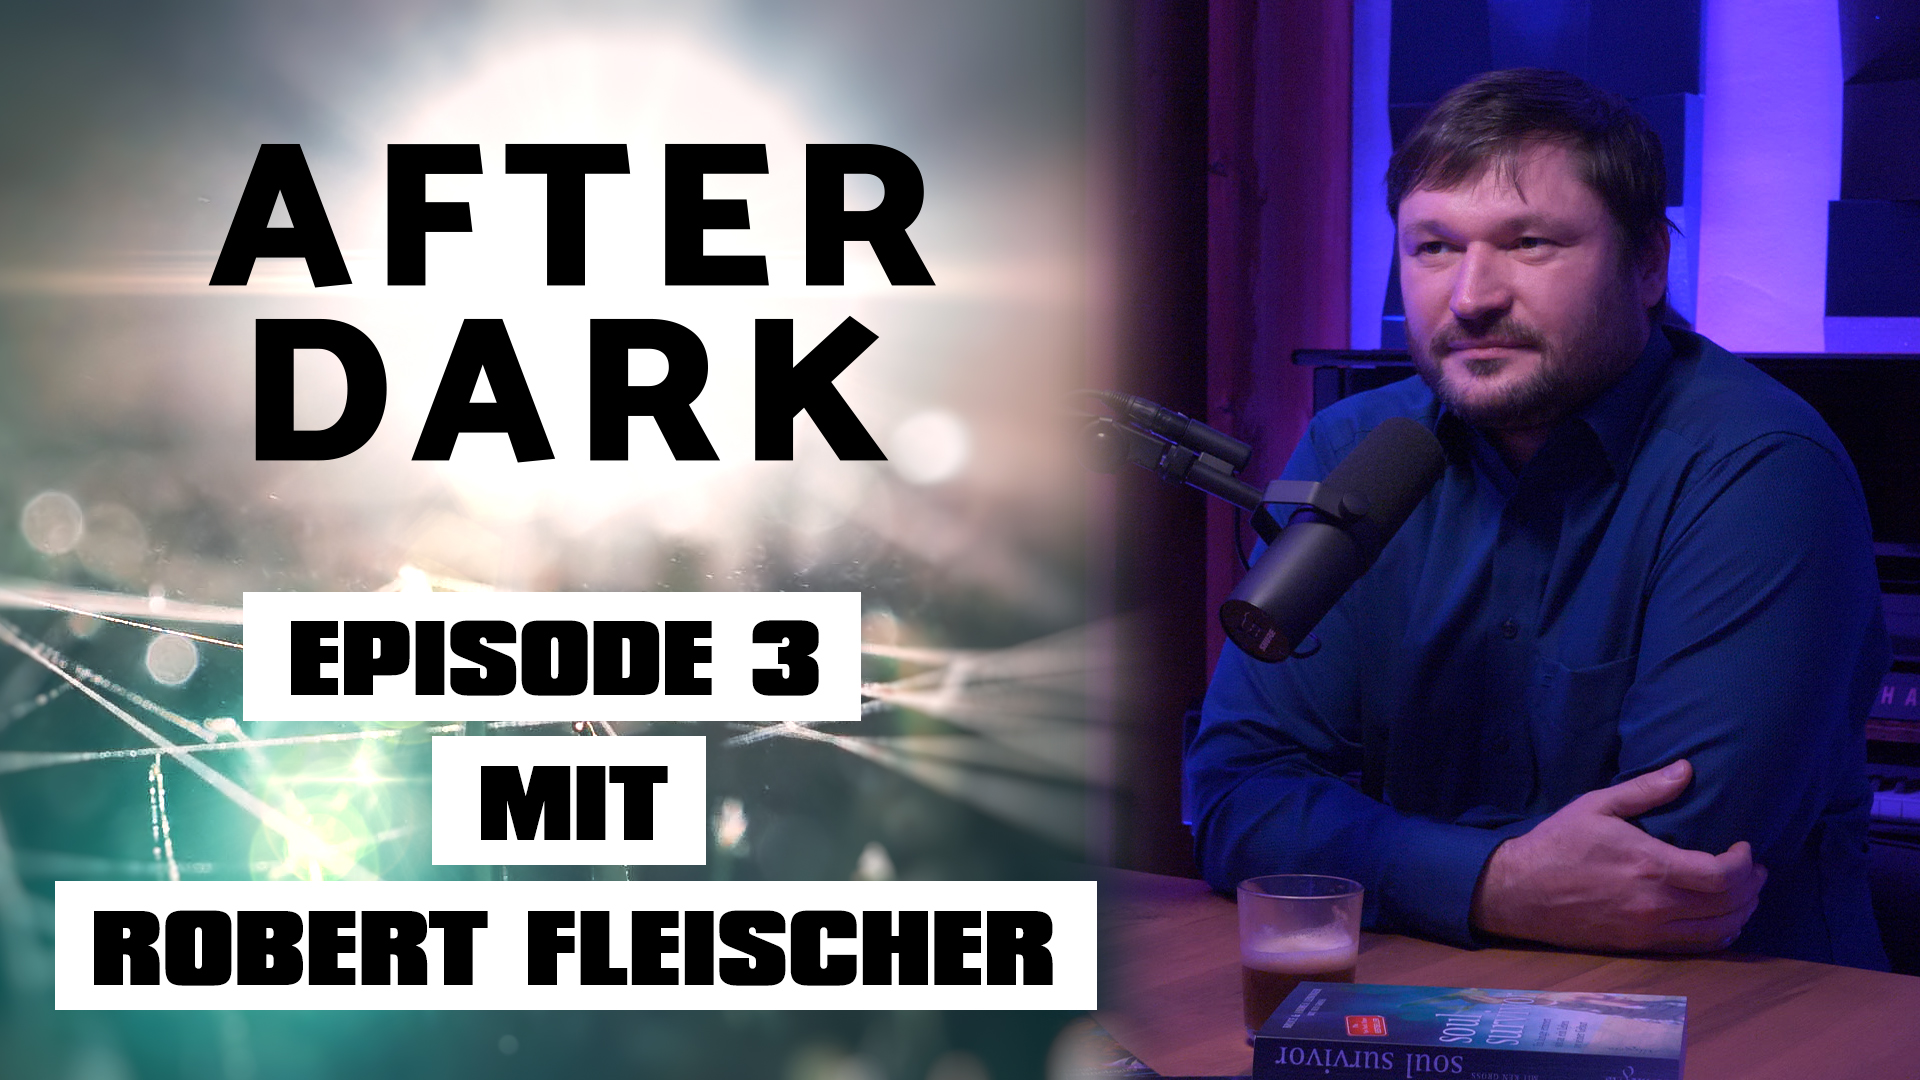 AFTER DARK EPISODE 3 mit Robert Fleischer